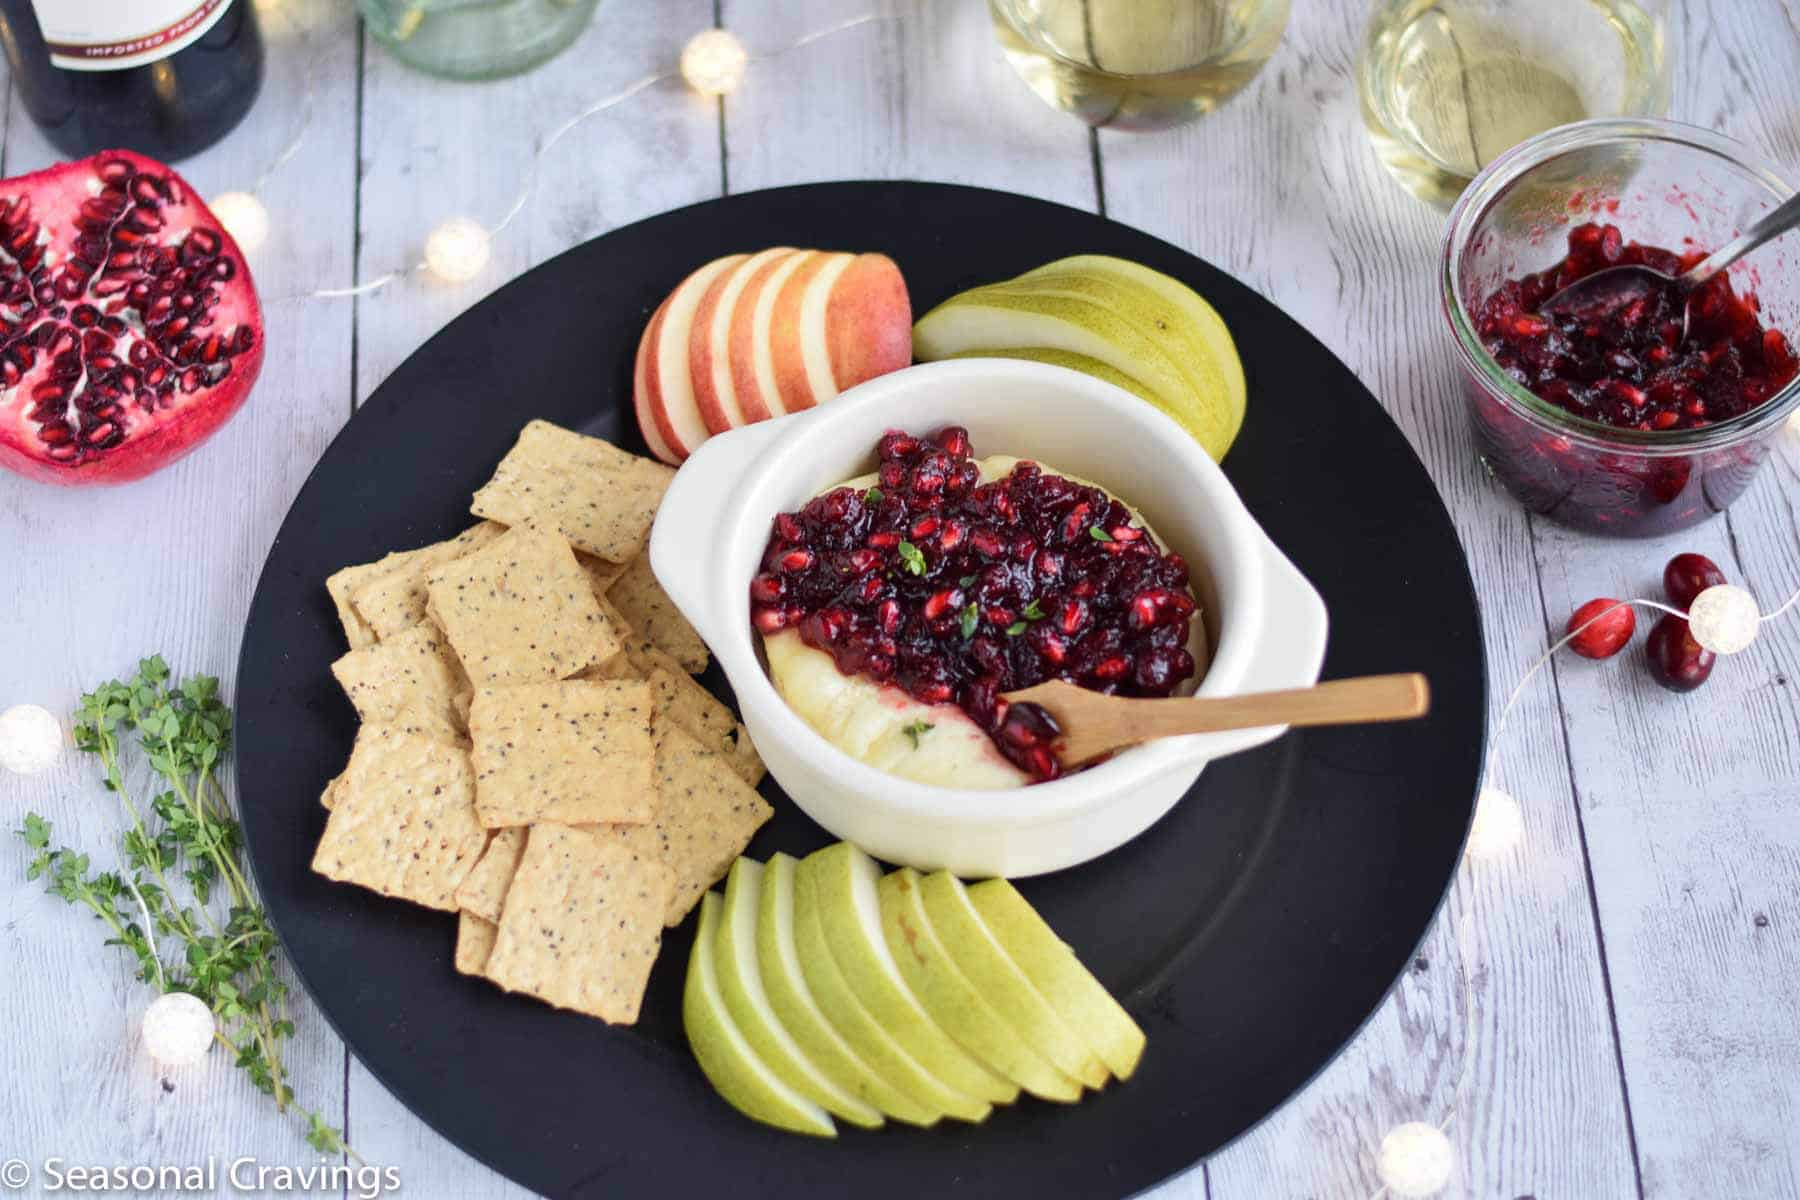 Pomegranate Cranberry Baked Brie is the perfect sweet and salty appetizer for any party.